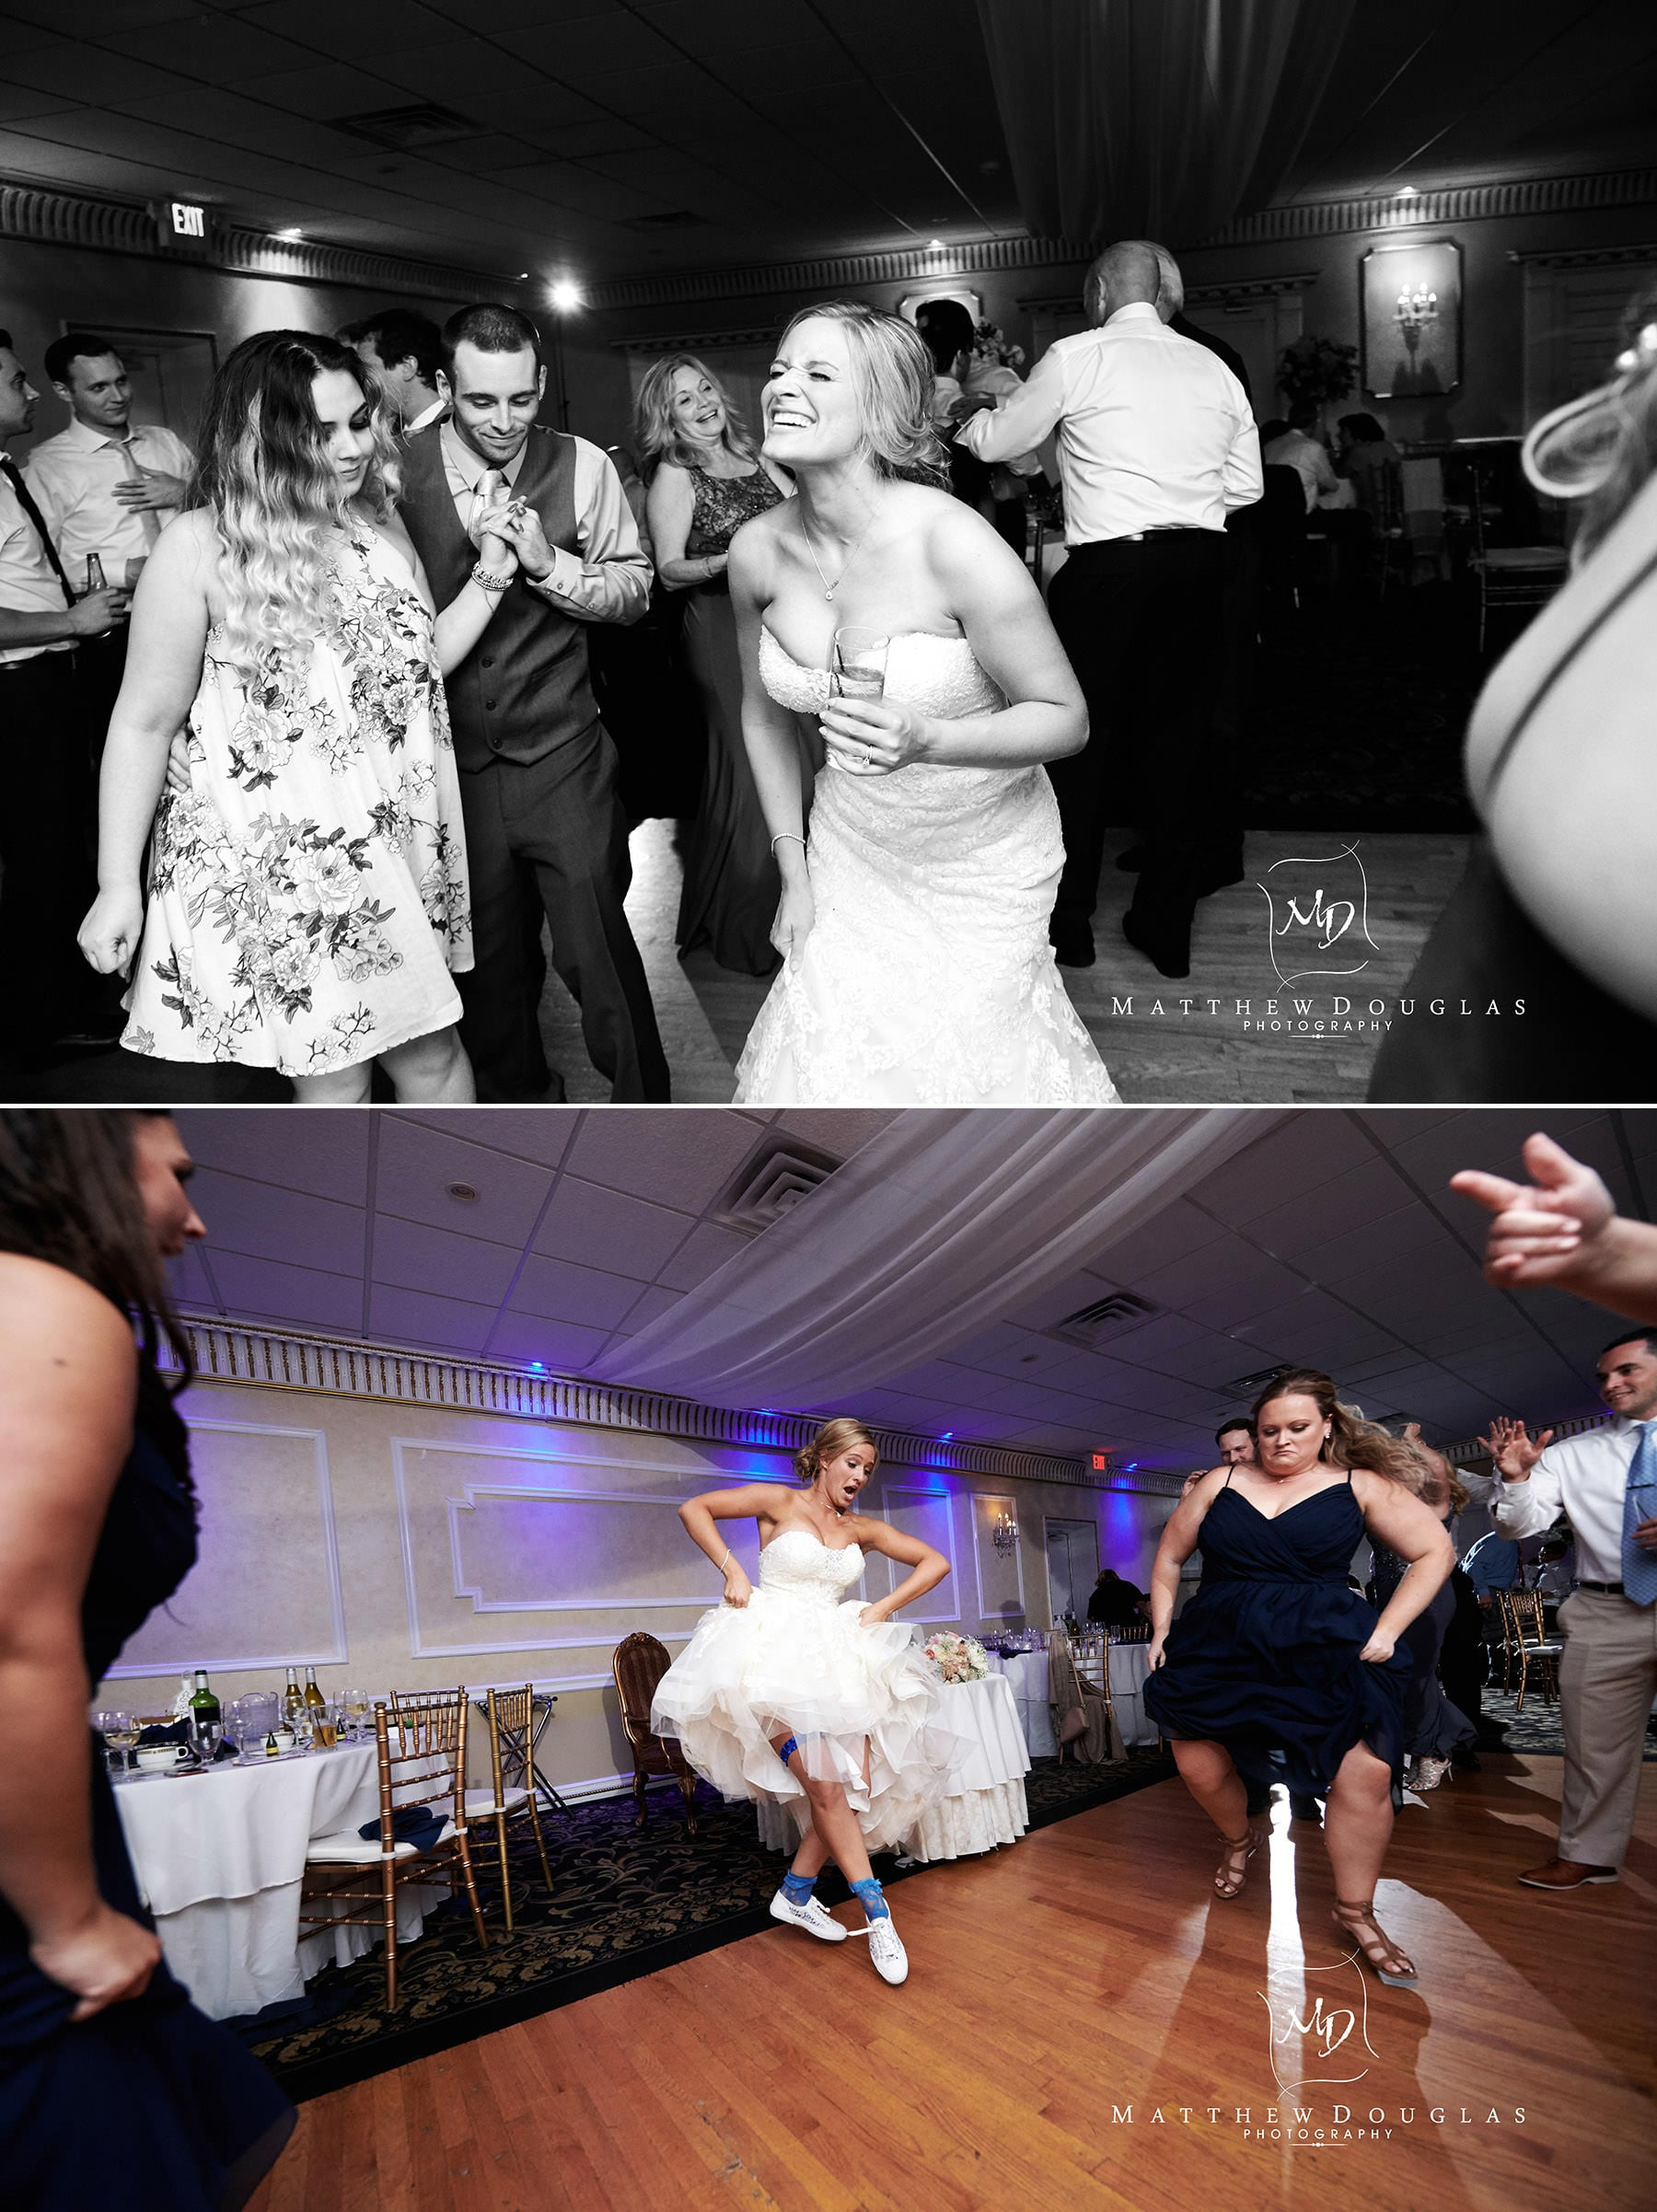 Chandelier Flanders Valley Wedding bride dancing photos